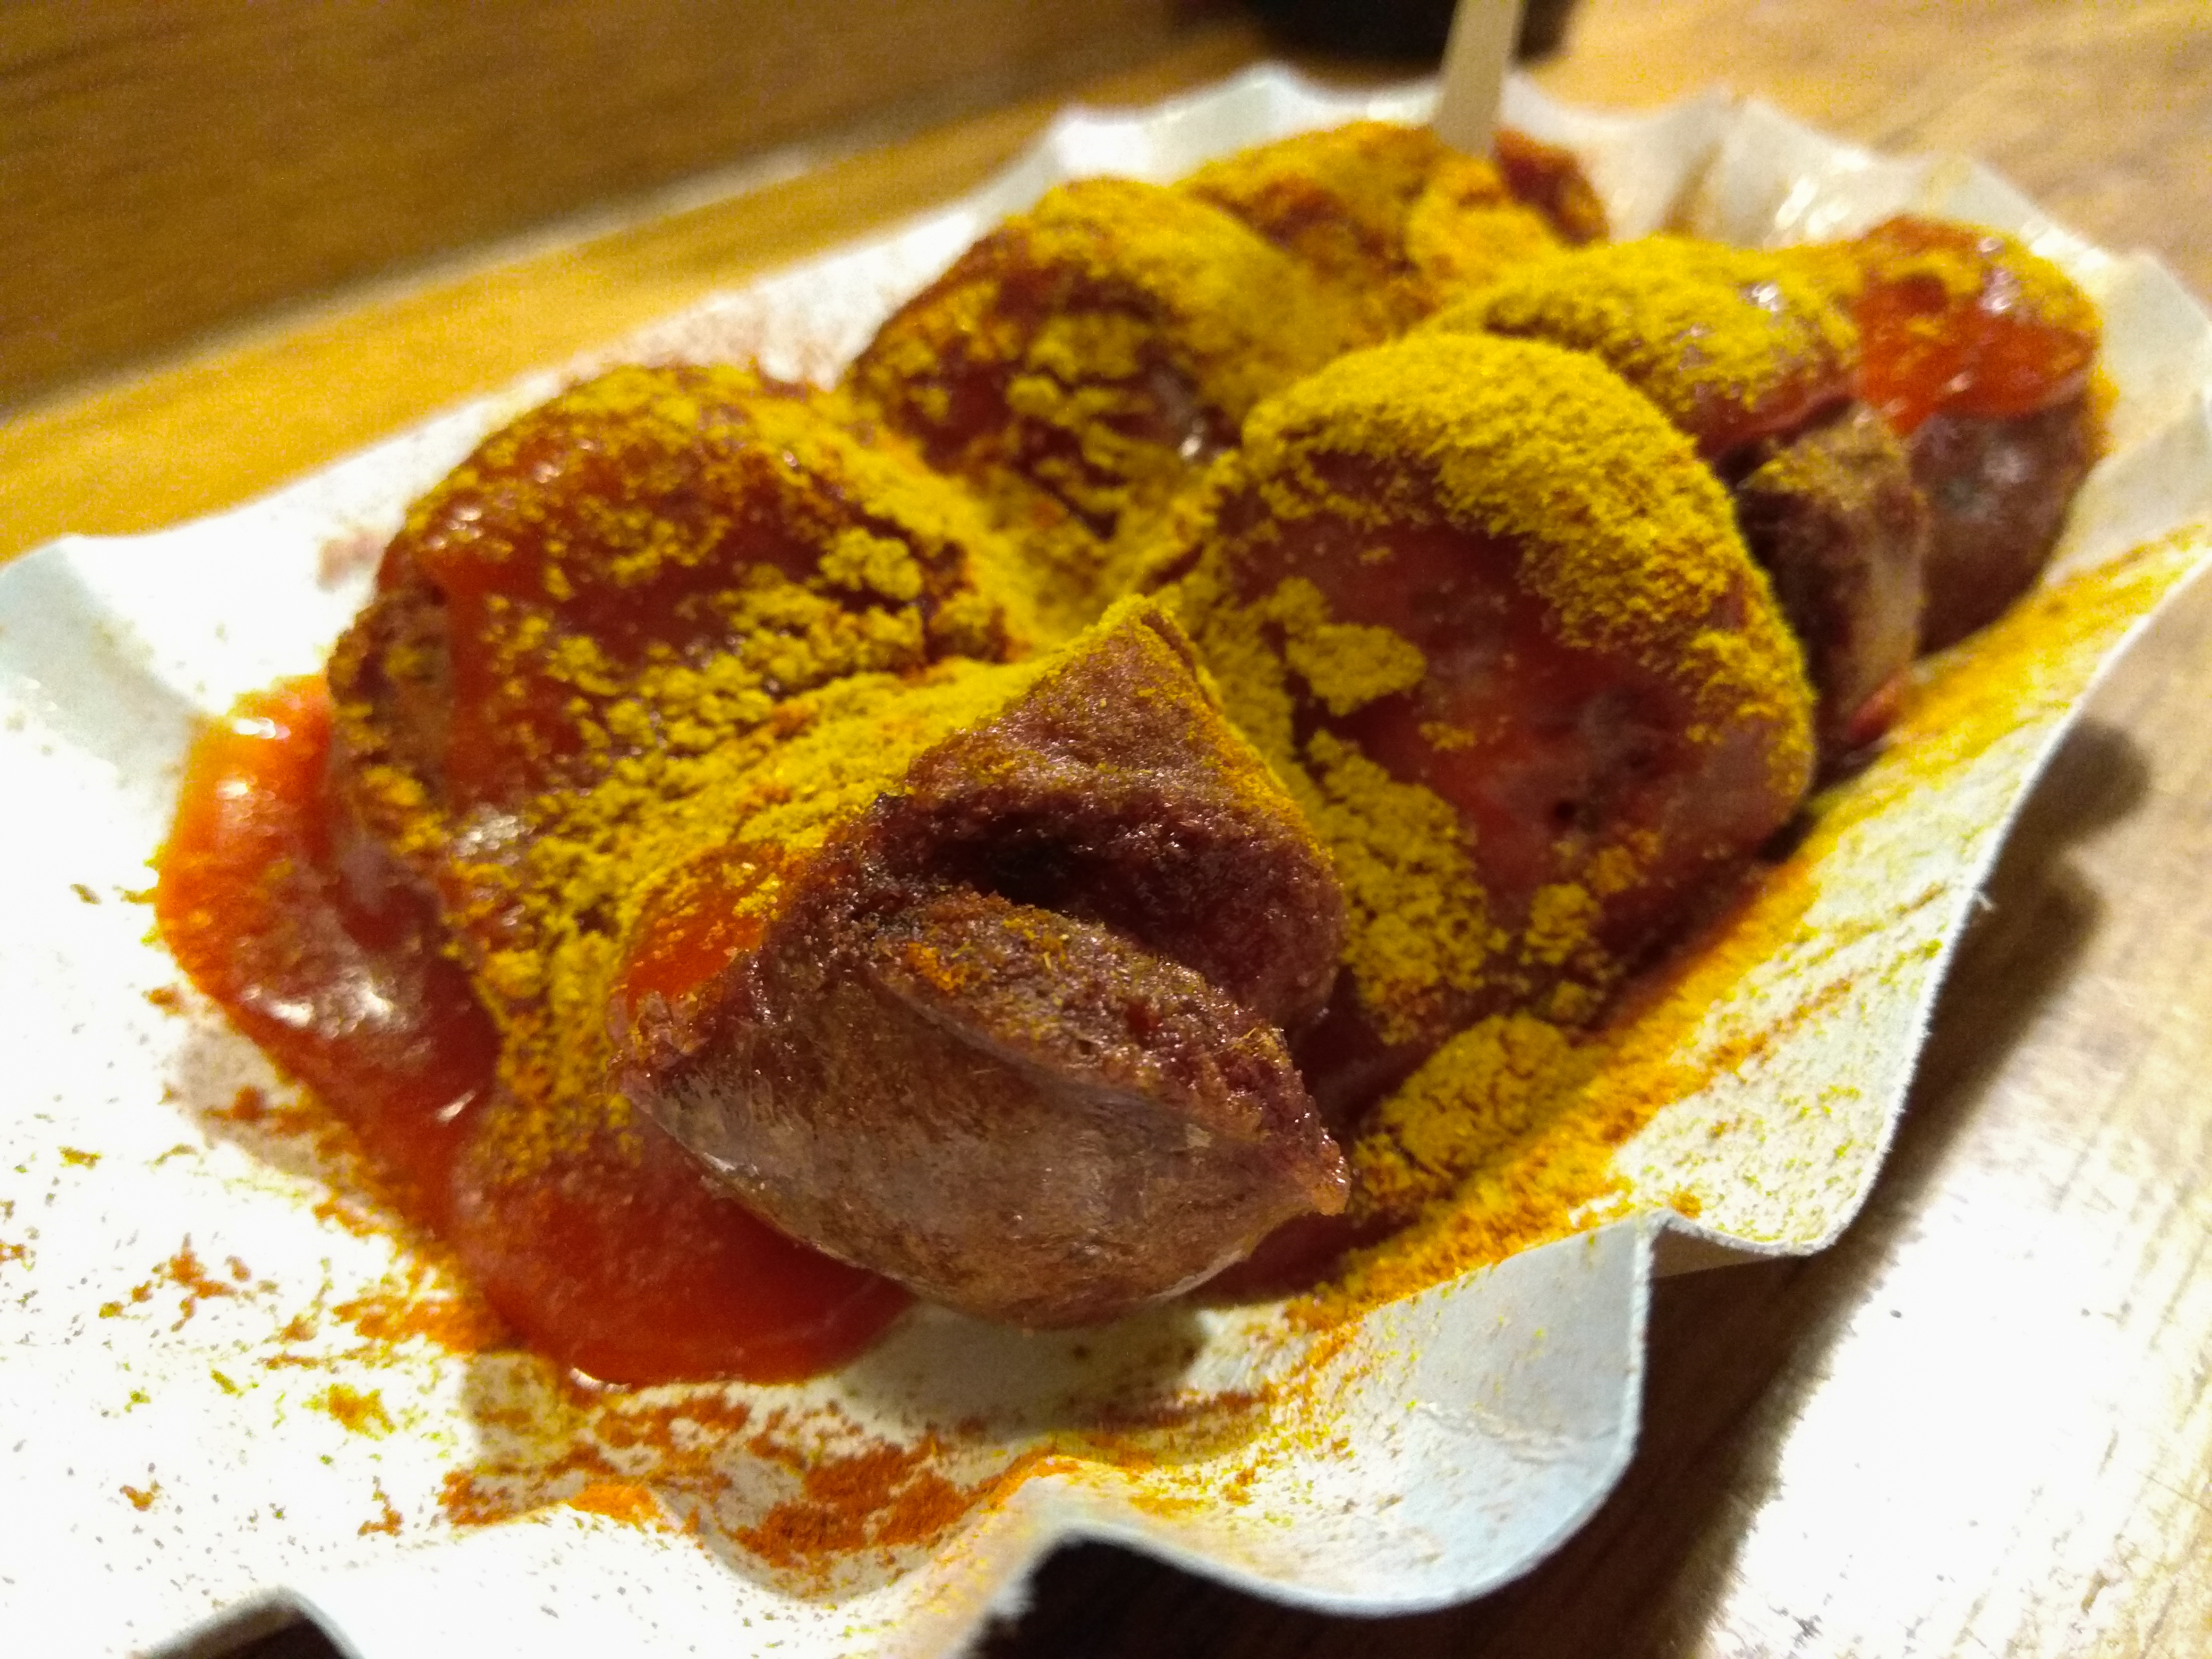 File:Currywurst - CurryMitte.jpg - Wikimedia Commons